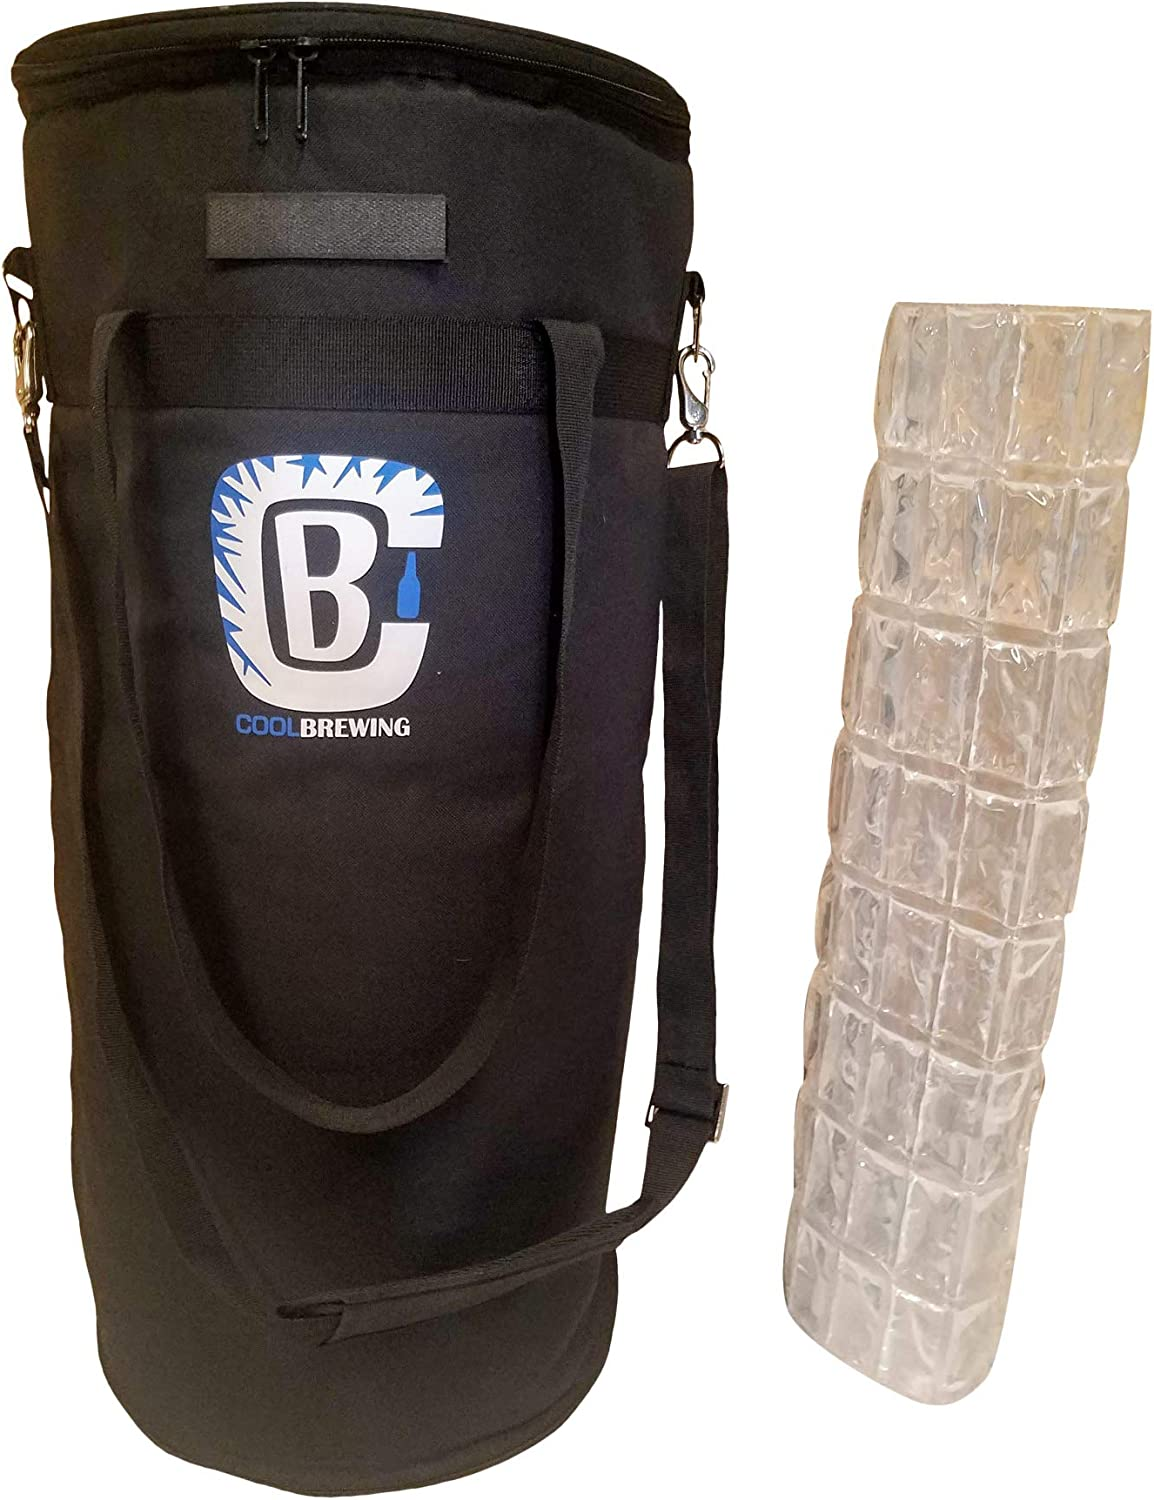 Home brew Keg Cooler & Ice Wrap Bundle. Beer Cooler for 5 gallon, Corny and Cornelius kegs. Cool Brewing